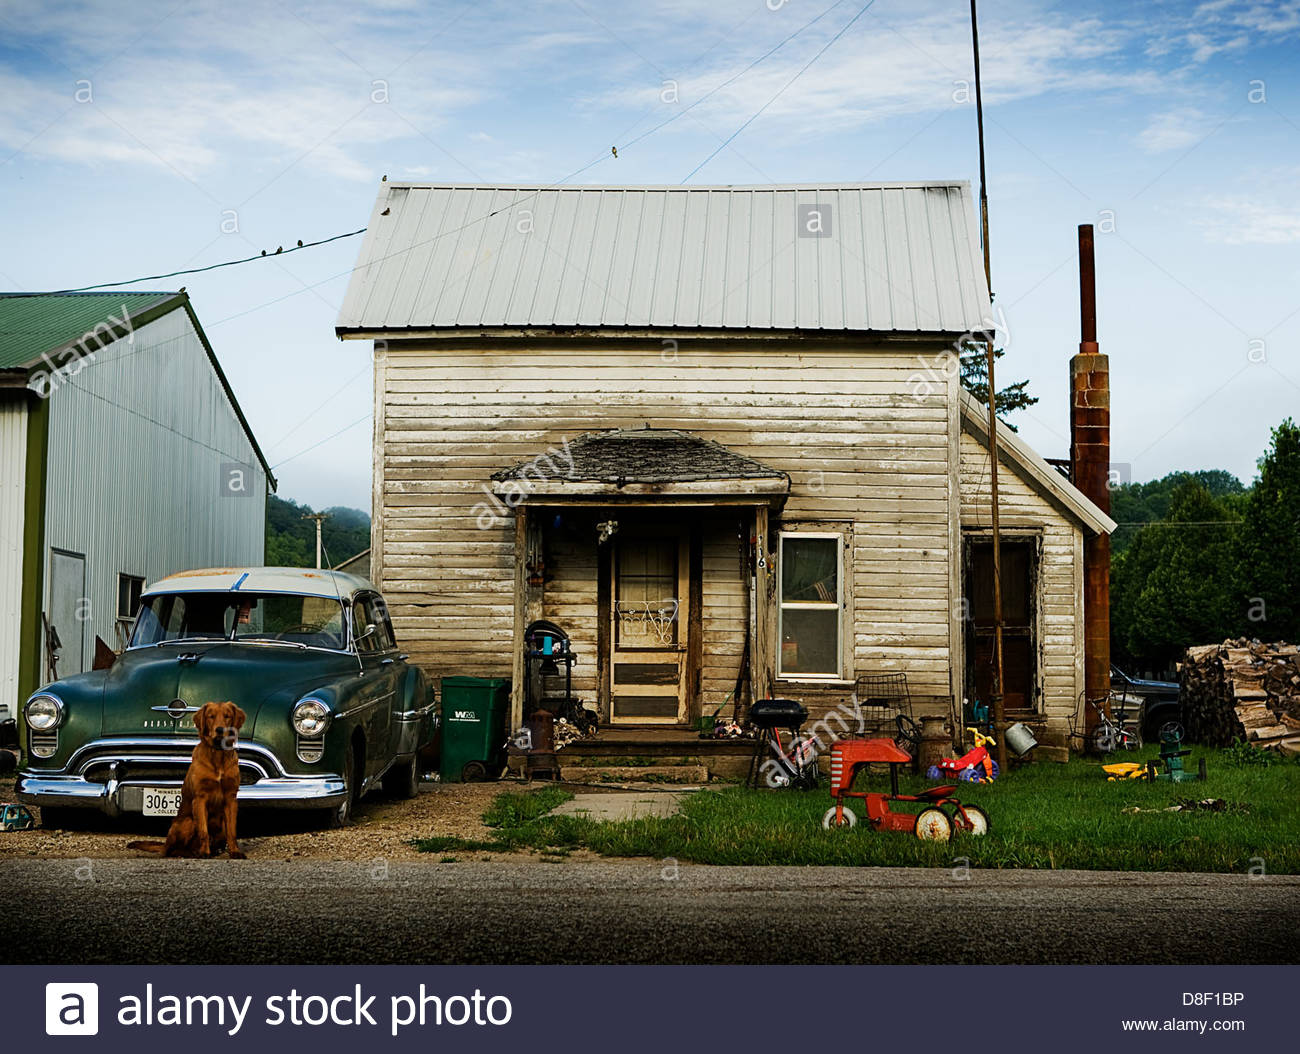 A run down shack in small town America. Old car sets outside a small house with toys and clutter in the yard. - Stock Image